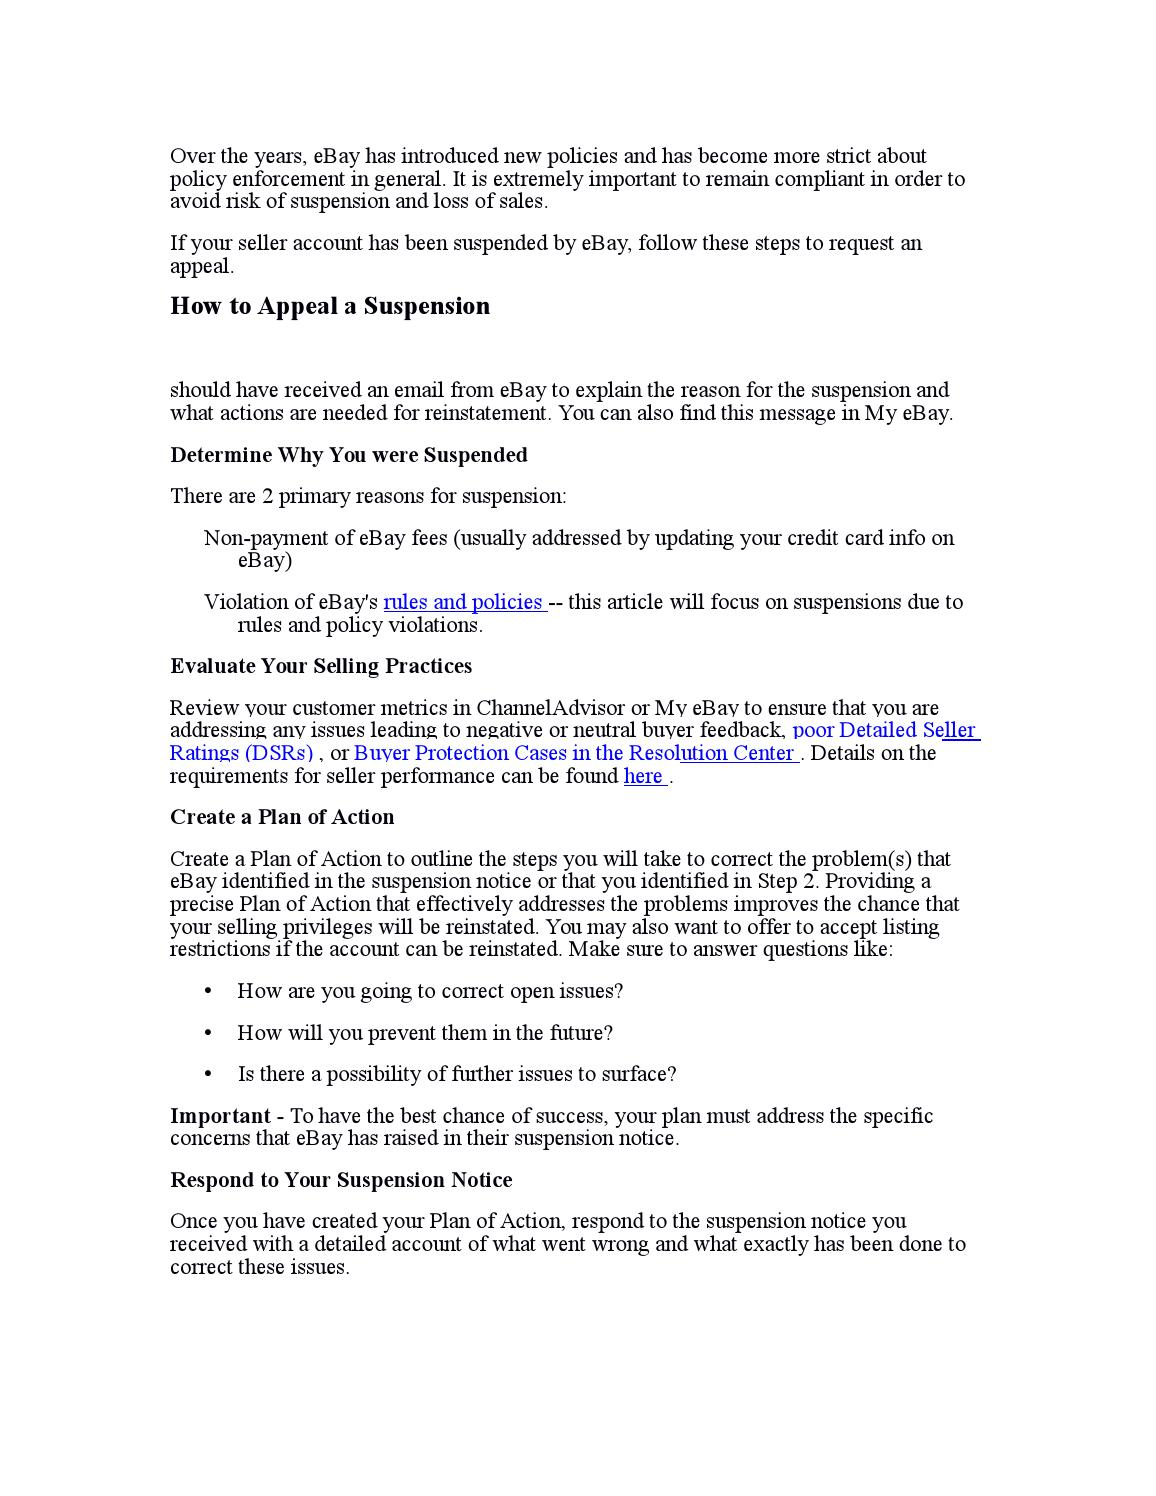 Ebay Reinstatement Efforts For Suspended Sellers By Simmonsrewq Issuu